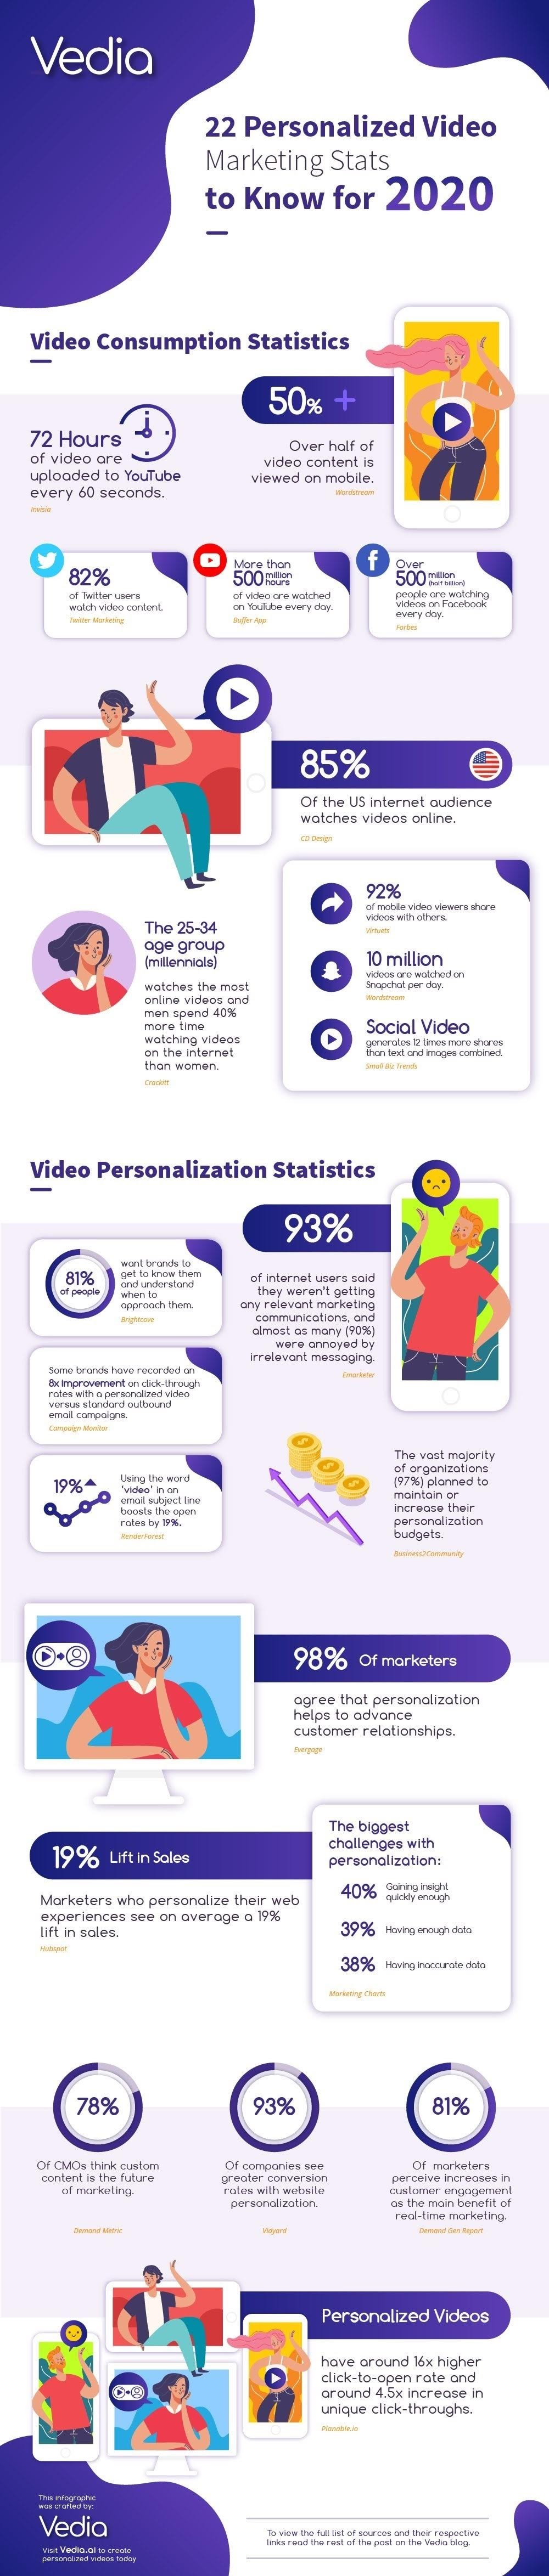 22 Personalized Video Marketing Stats to Know for 2020 #infographic